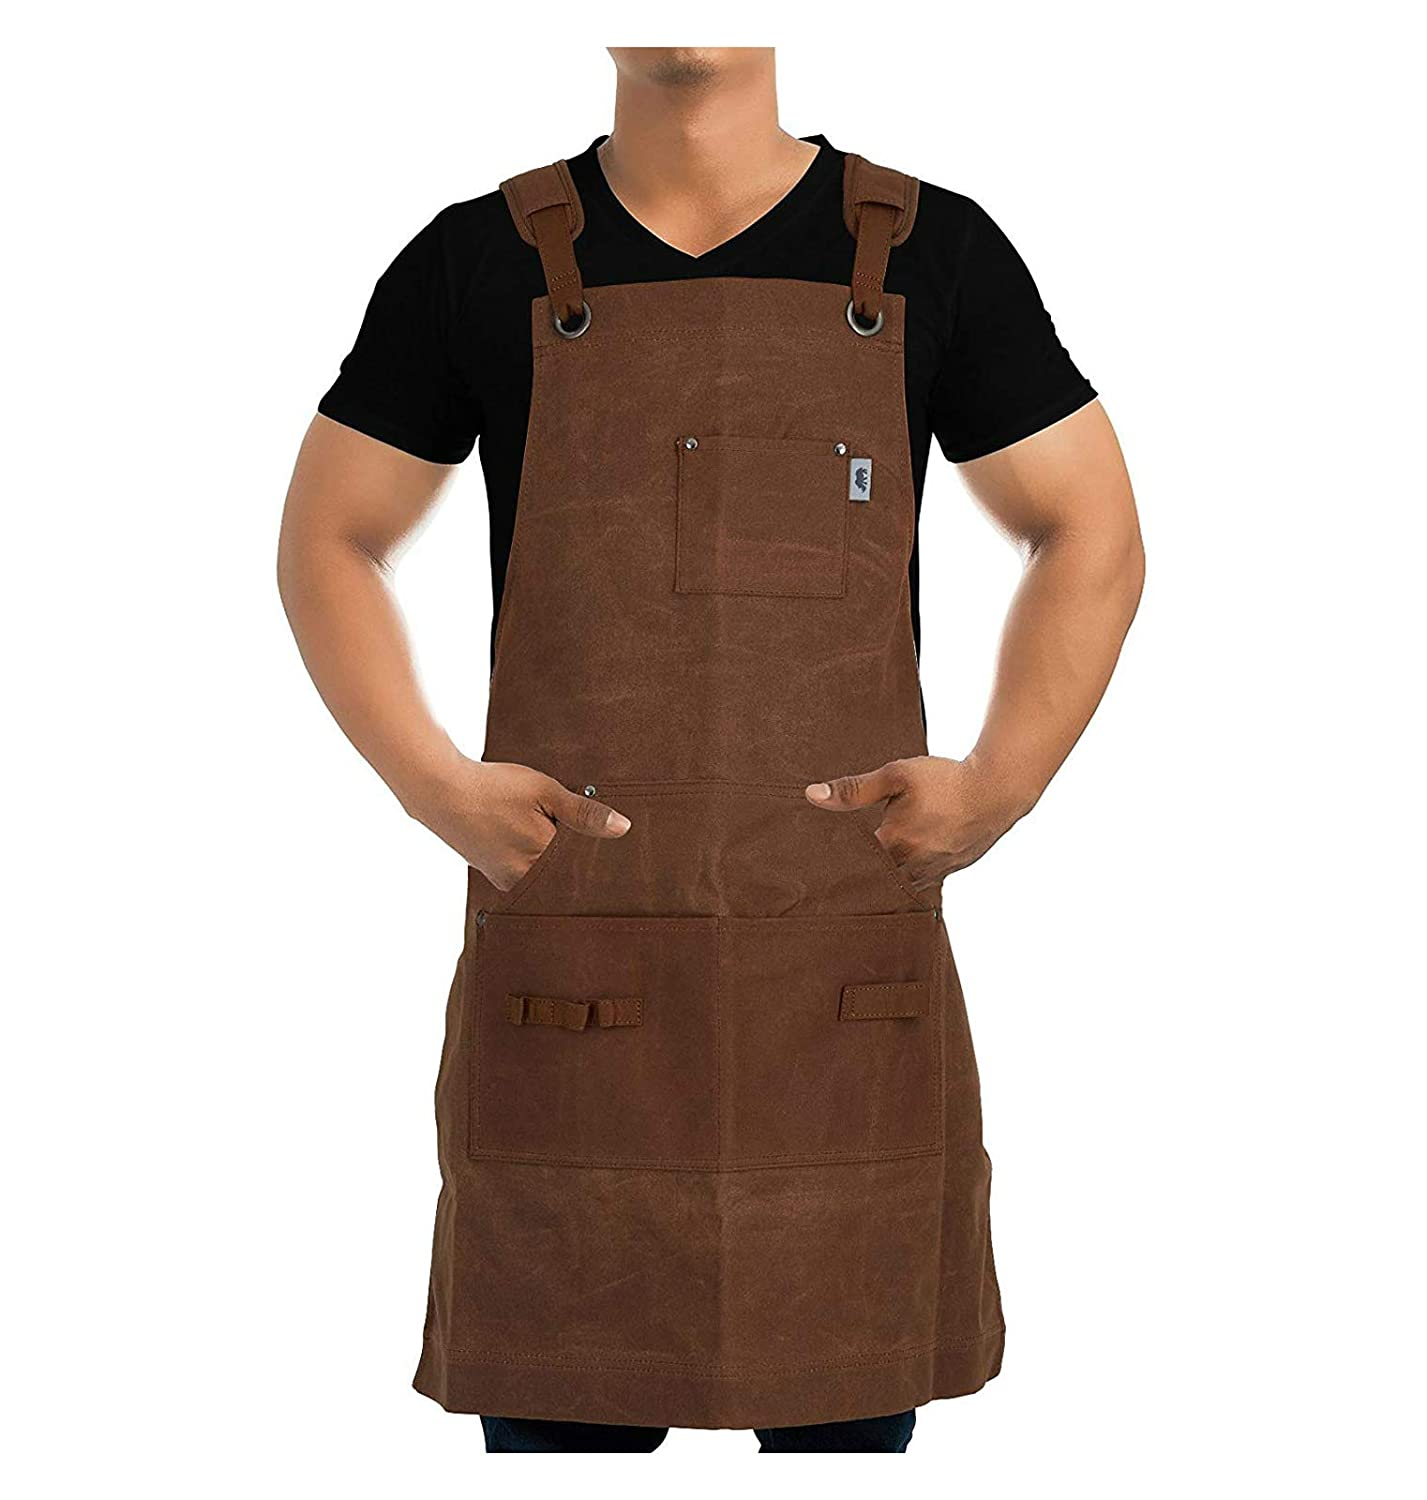 Work Apron For Men Women By Premium Rhino Heavy Duty Waxed Canvas Multiple Tools Pockets Adjustable Unisex Sizing For Woodworking Painting Crafting Cooking Bartenders Brown